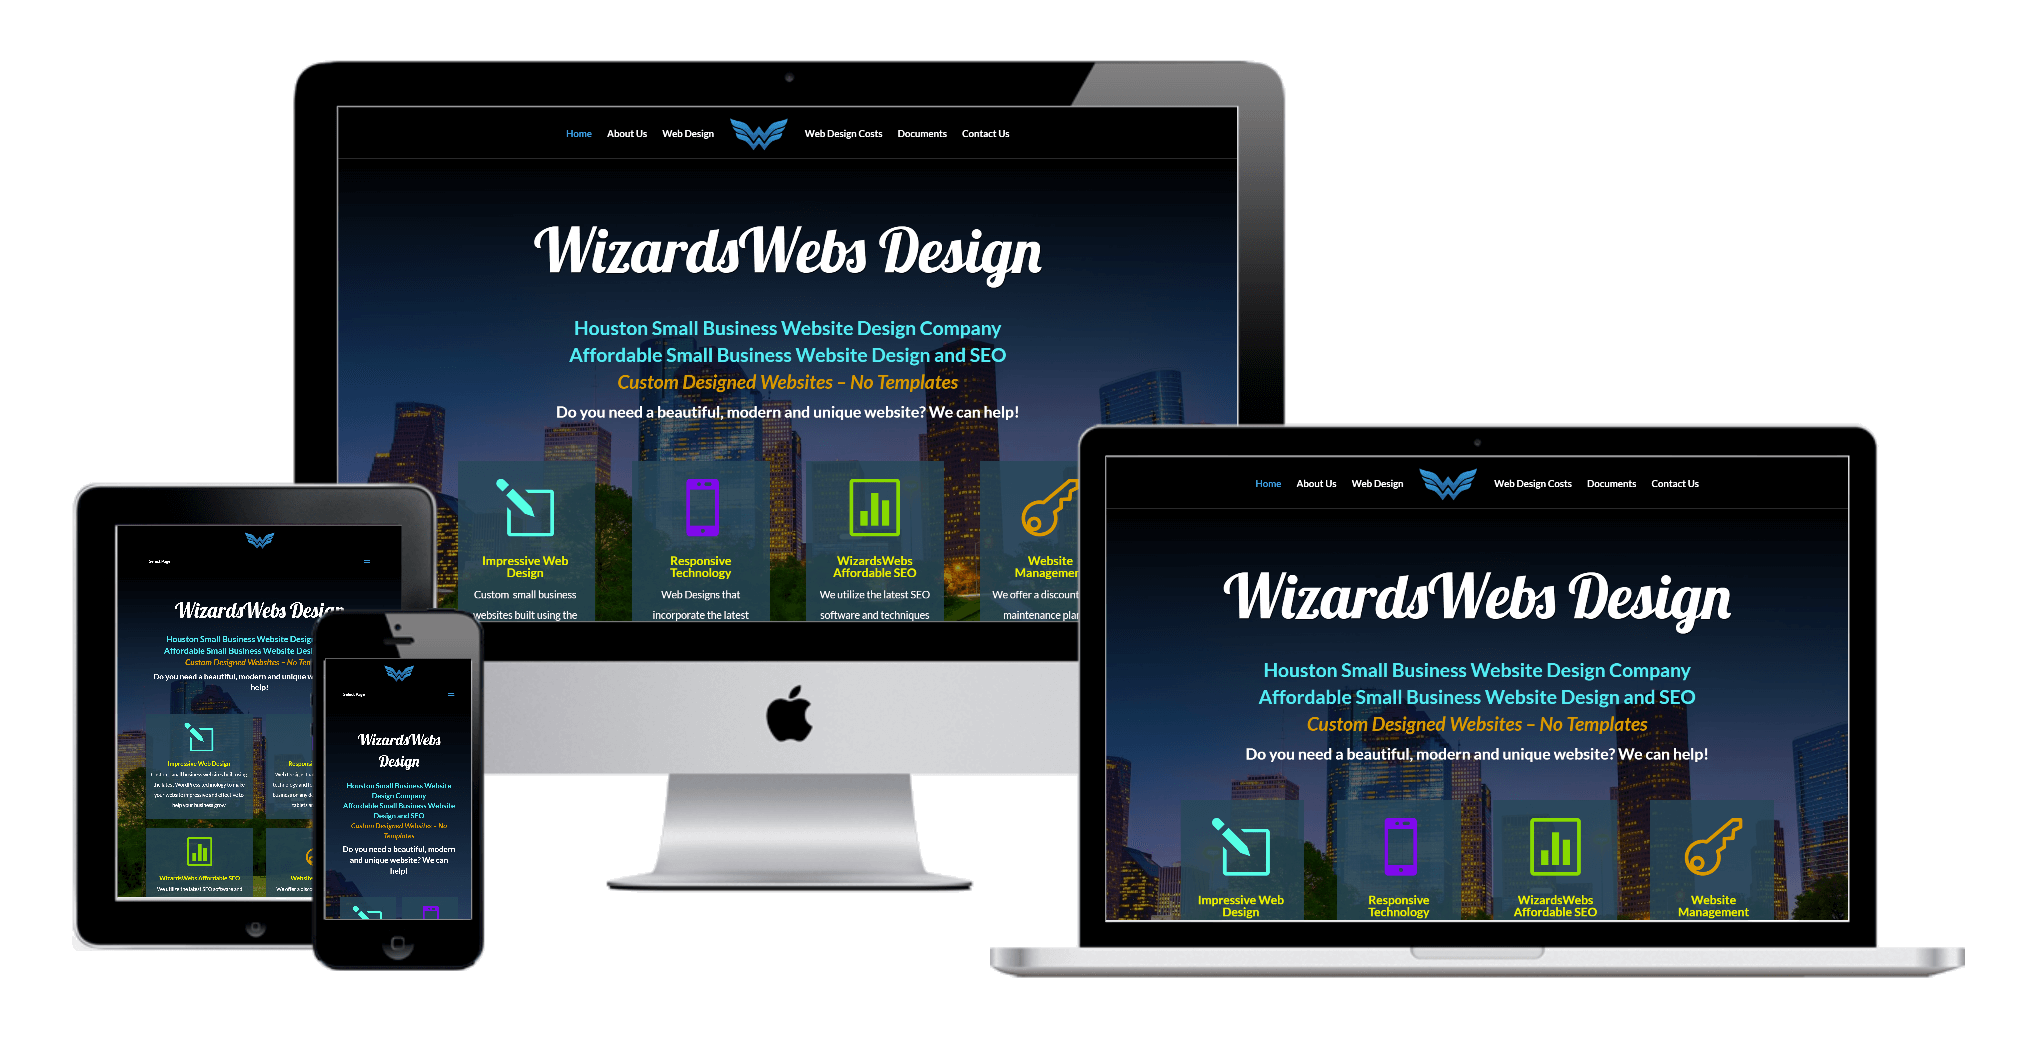 The Woodlands business website design - WizardsWebs Design LLC